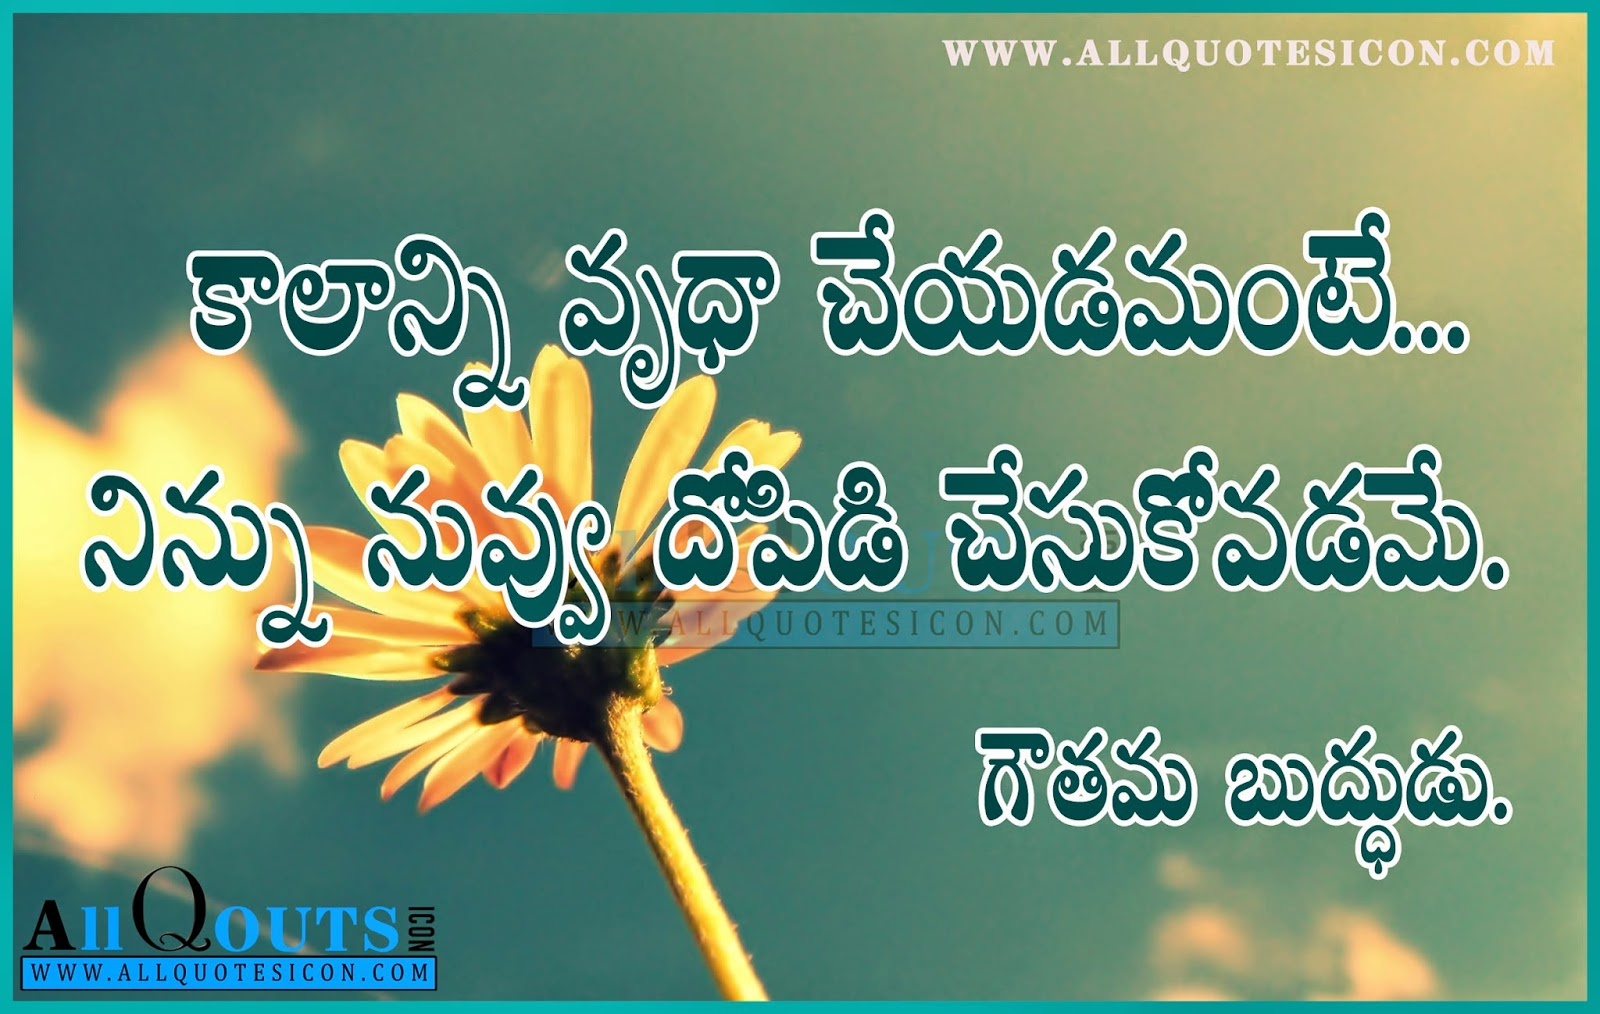 Goutama Buddha Quotes and Sayings in Telugu HD Wallpapers ...